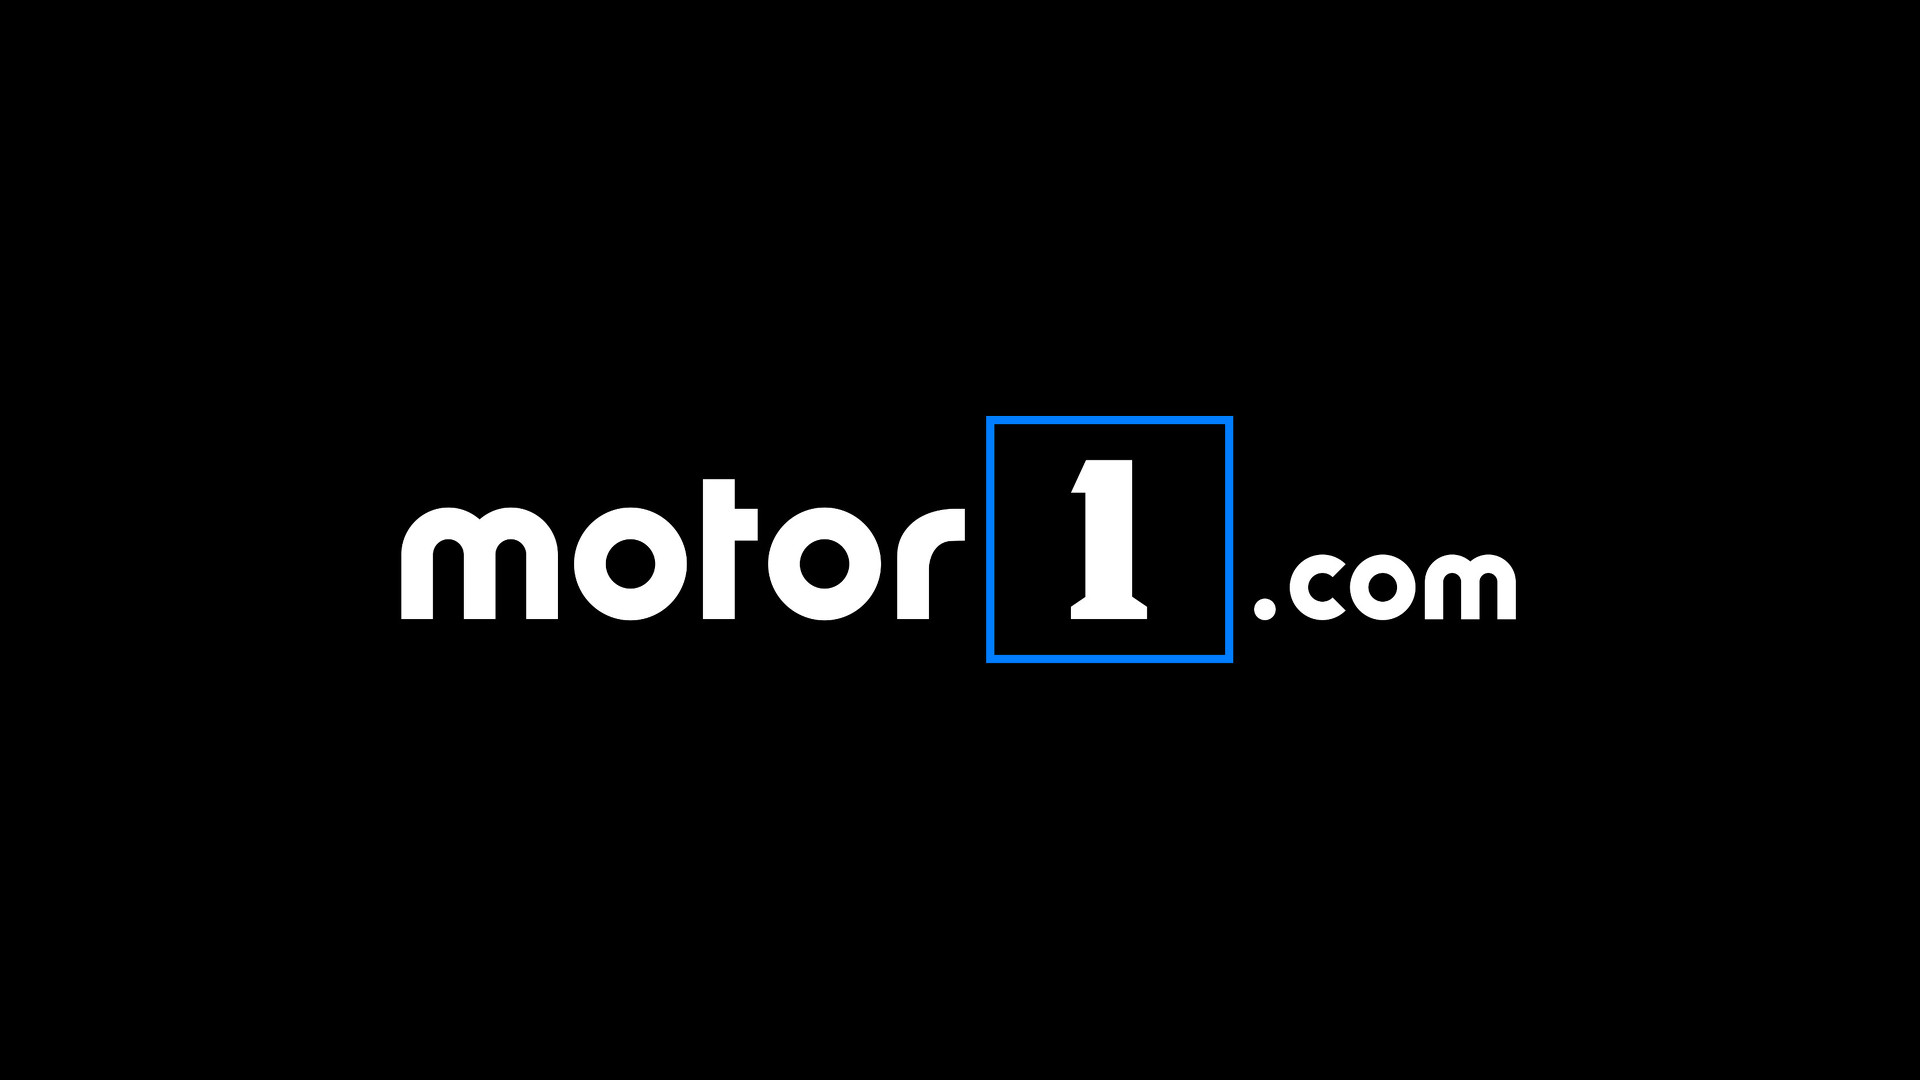 WorldCarFans becomes Motor1 this month